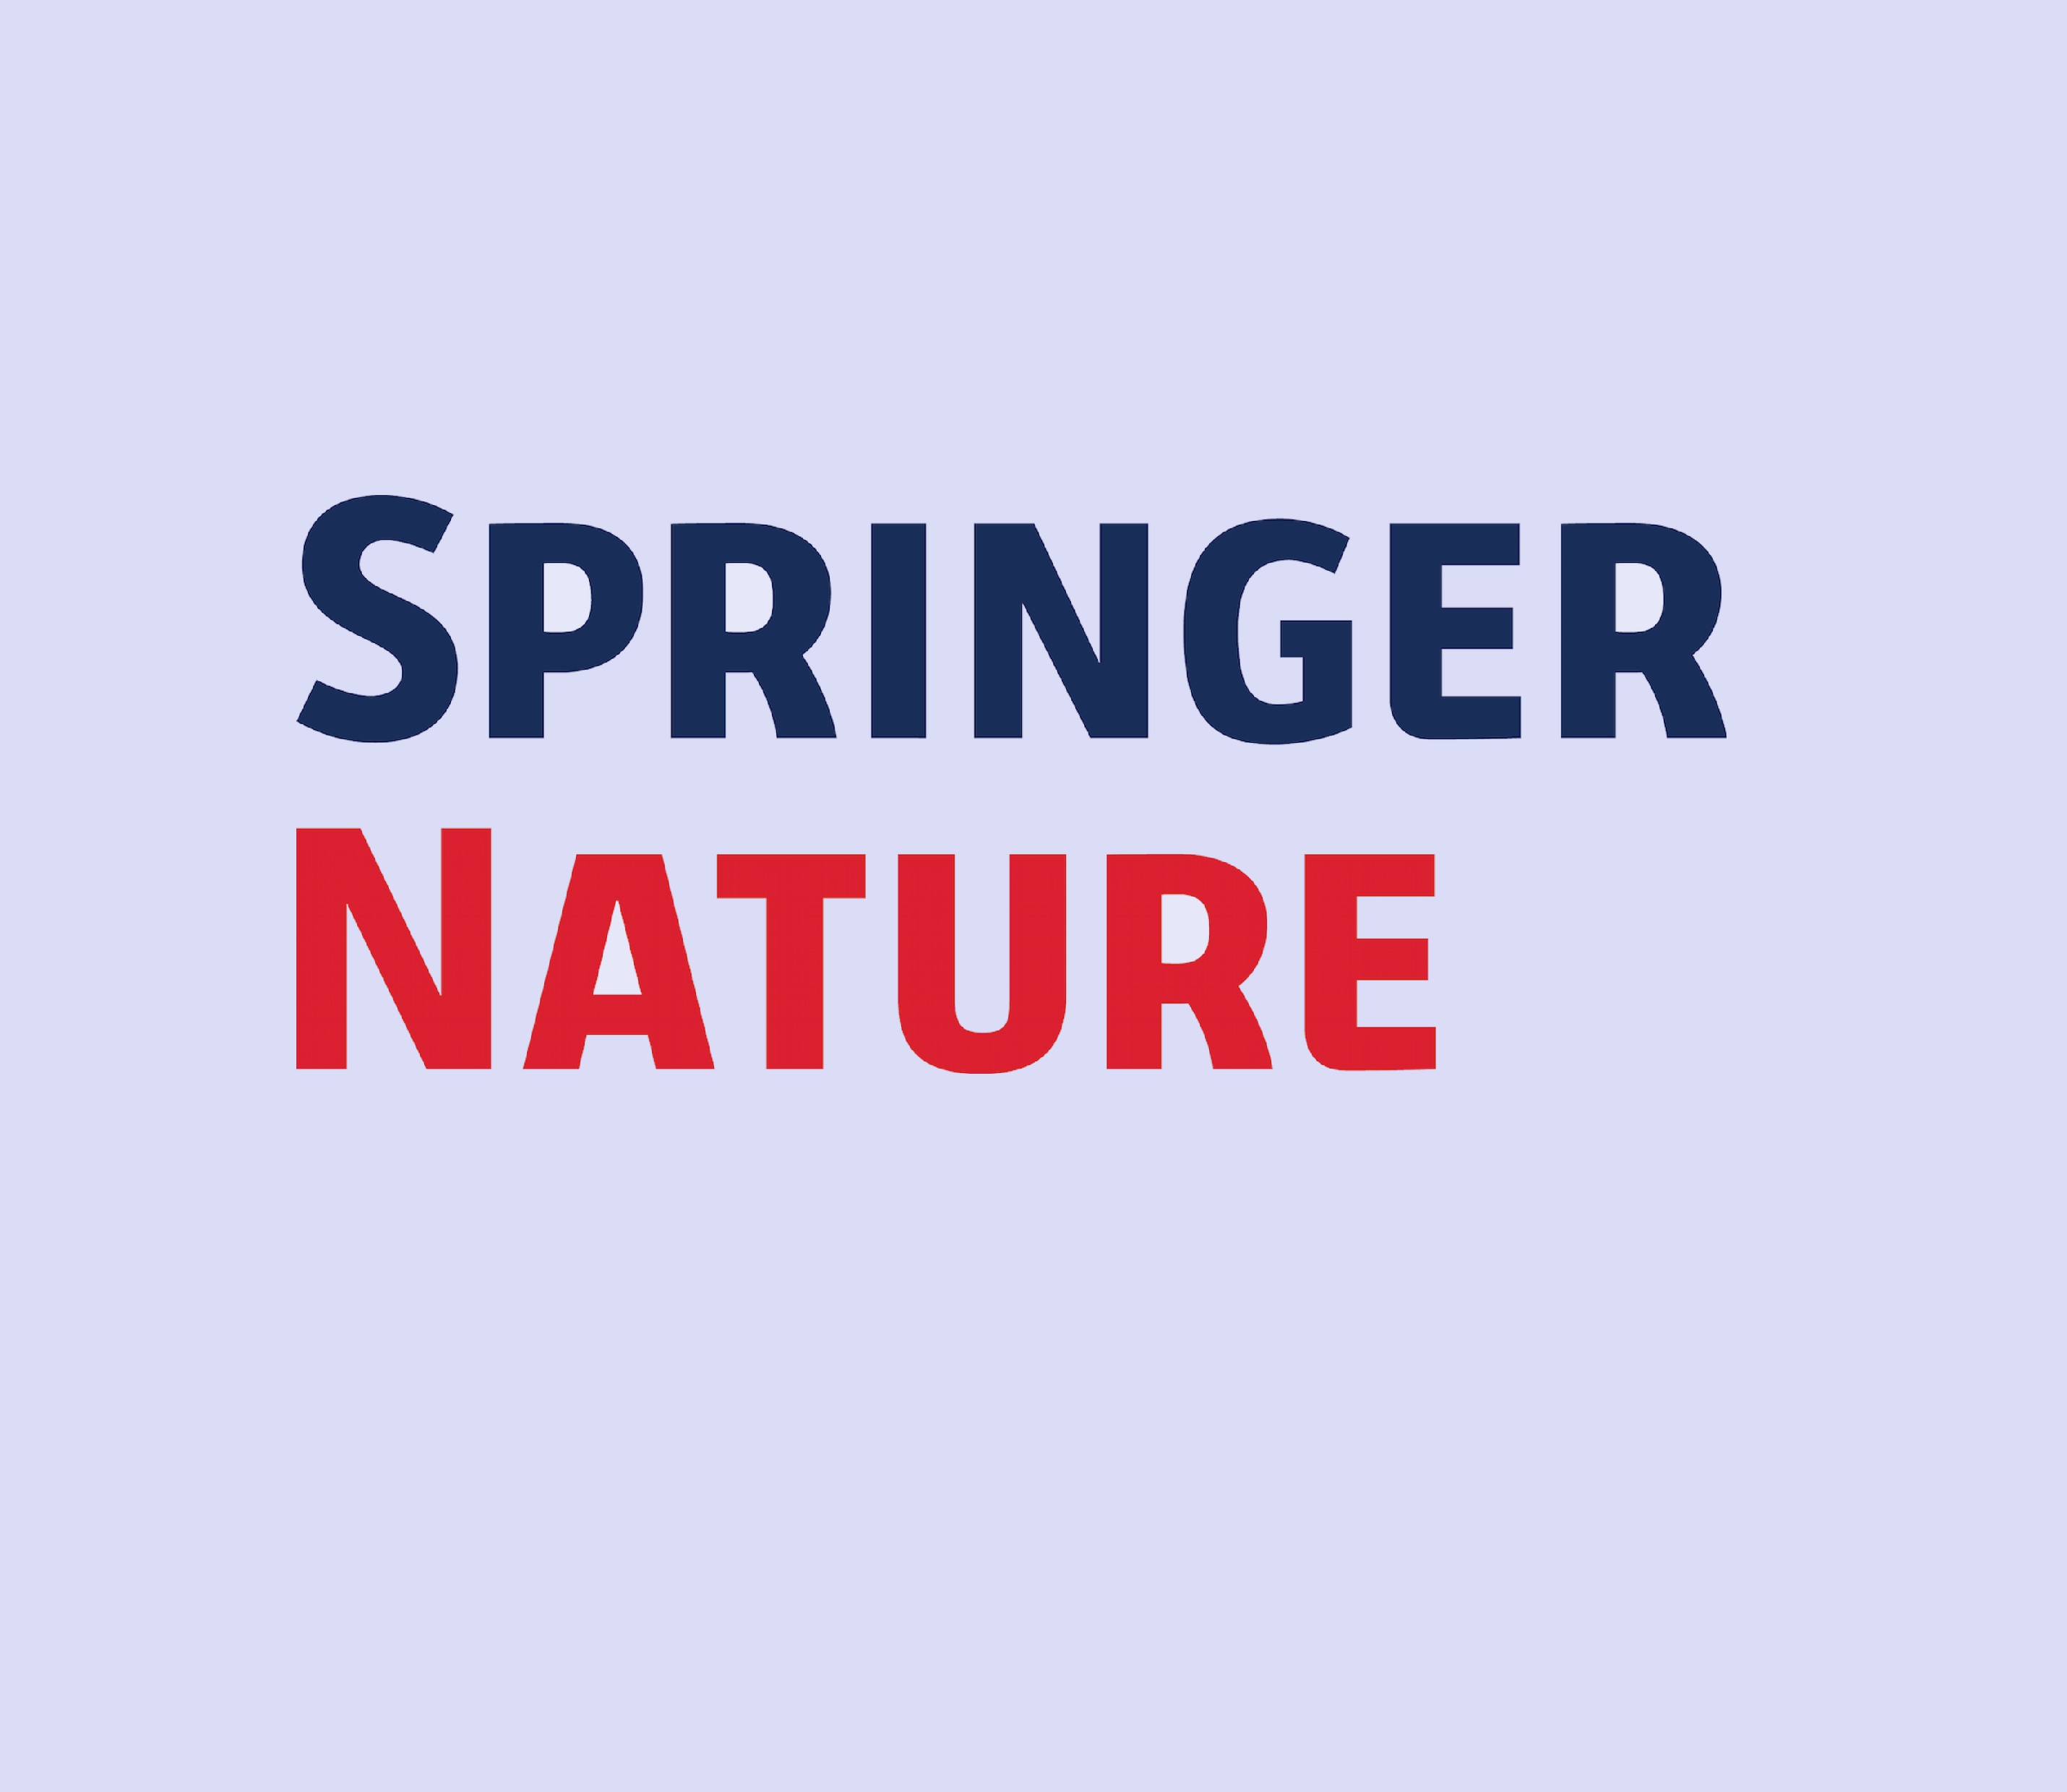 Logo with the text Springer (blue) and Nature (Red) against a light purple background